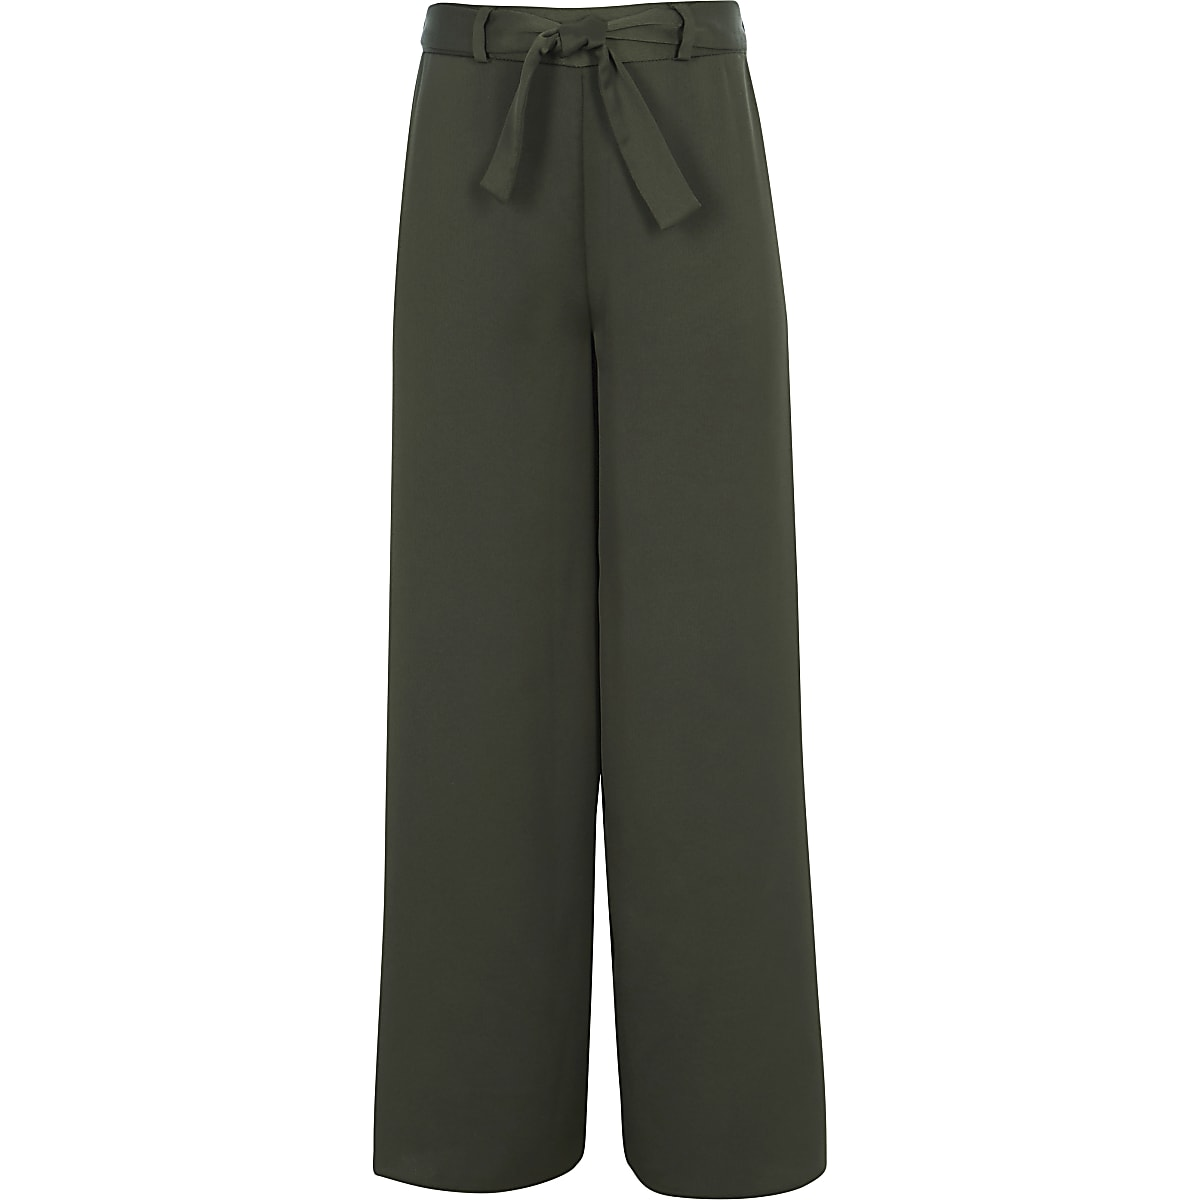 Girls khaki tie waist trousers